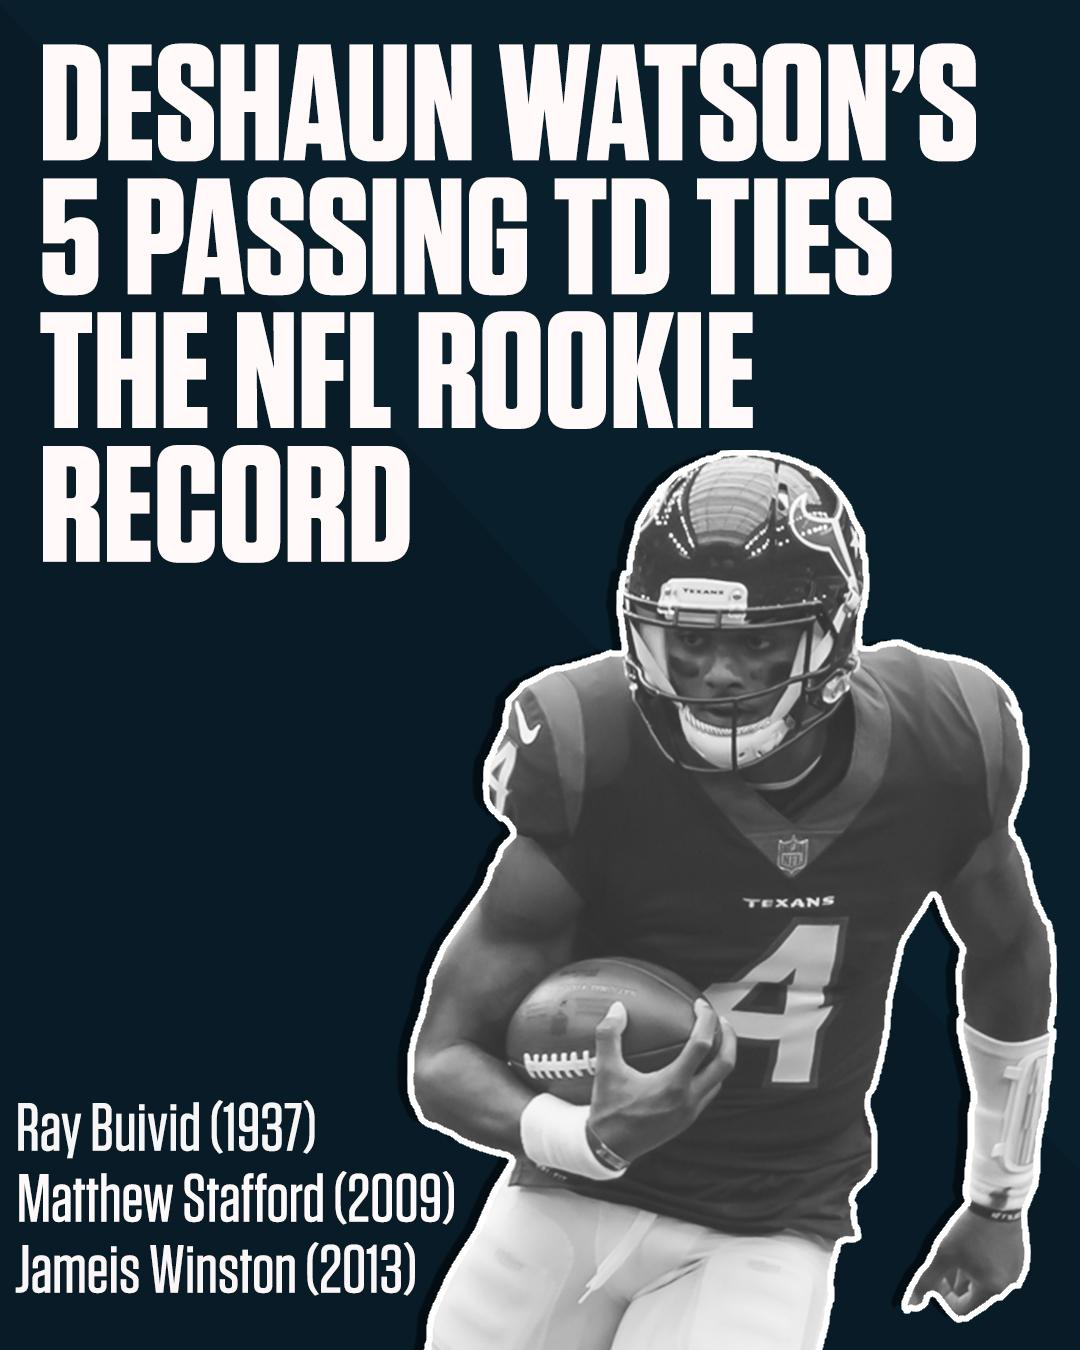 Rookie's on a roll. https://t.co/q660W0f5mE